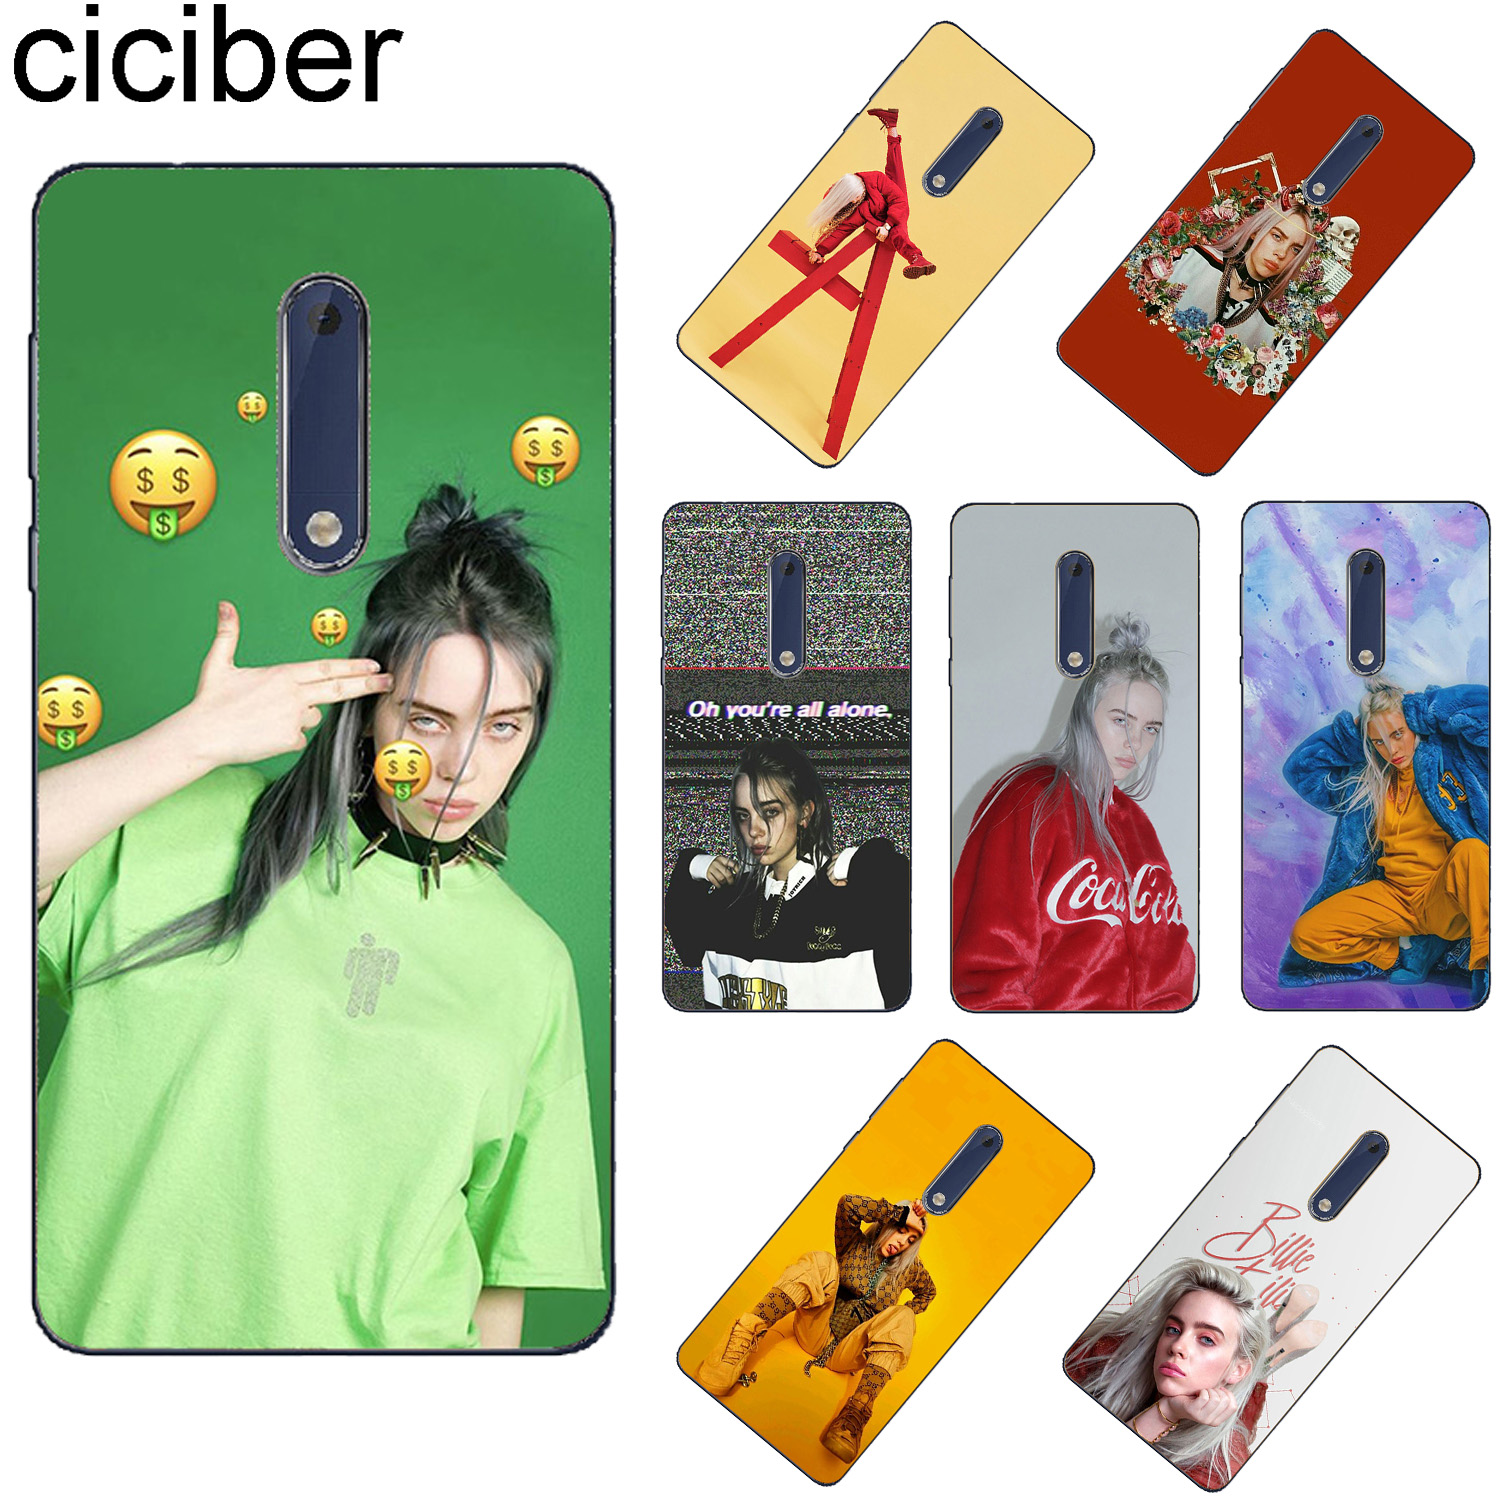 ciciber For Nokia 8 7 7.1 6 6.1 5 5.1 3 3.1 2 2.1 1 Plus Soft TPU Phone Cases X7 X6 X5 X3 Singer Billie Eilish Fundas